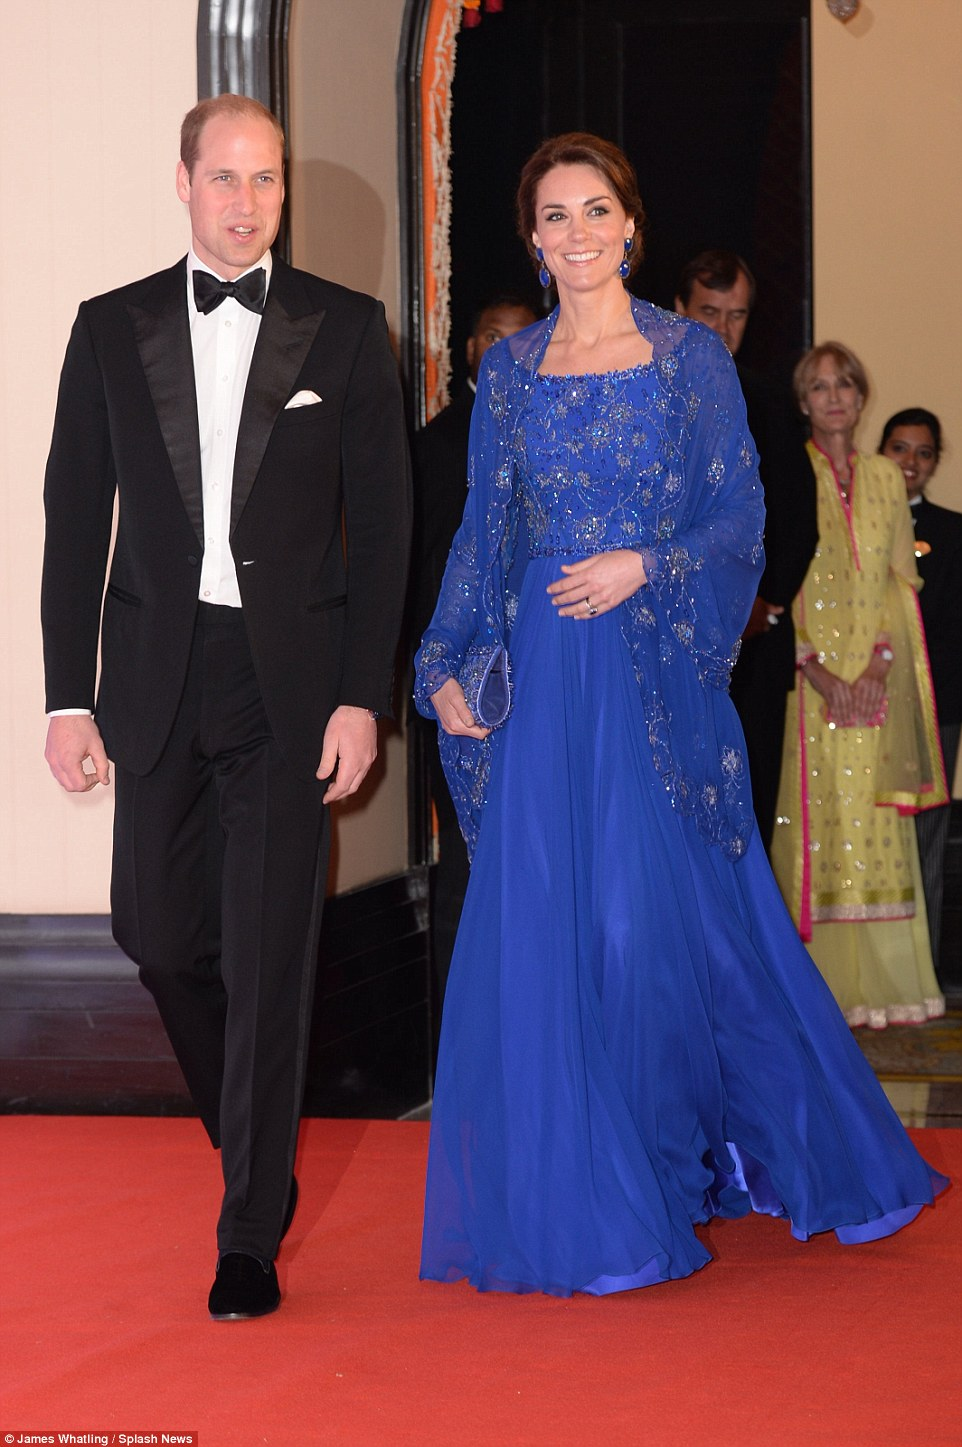 Duchess Kate and Prince William in India, Kate Middleton's tour of India